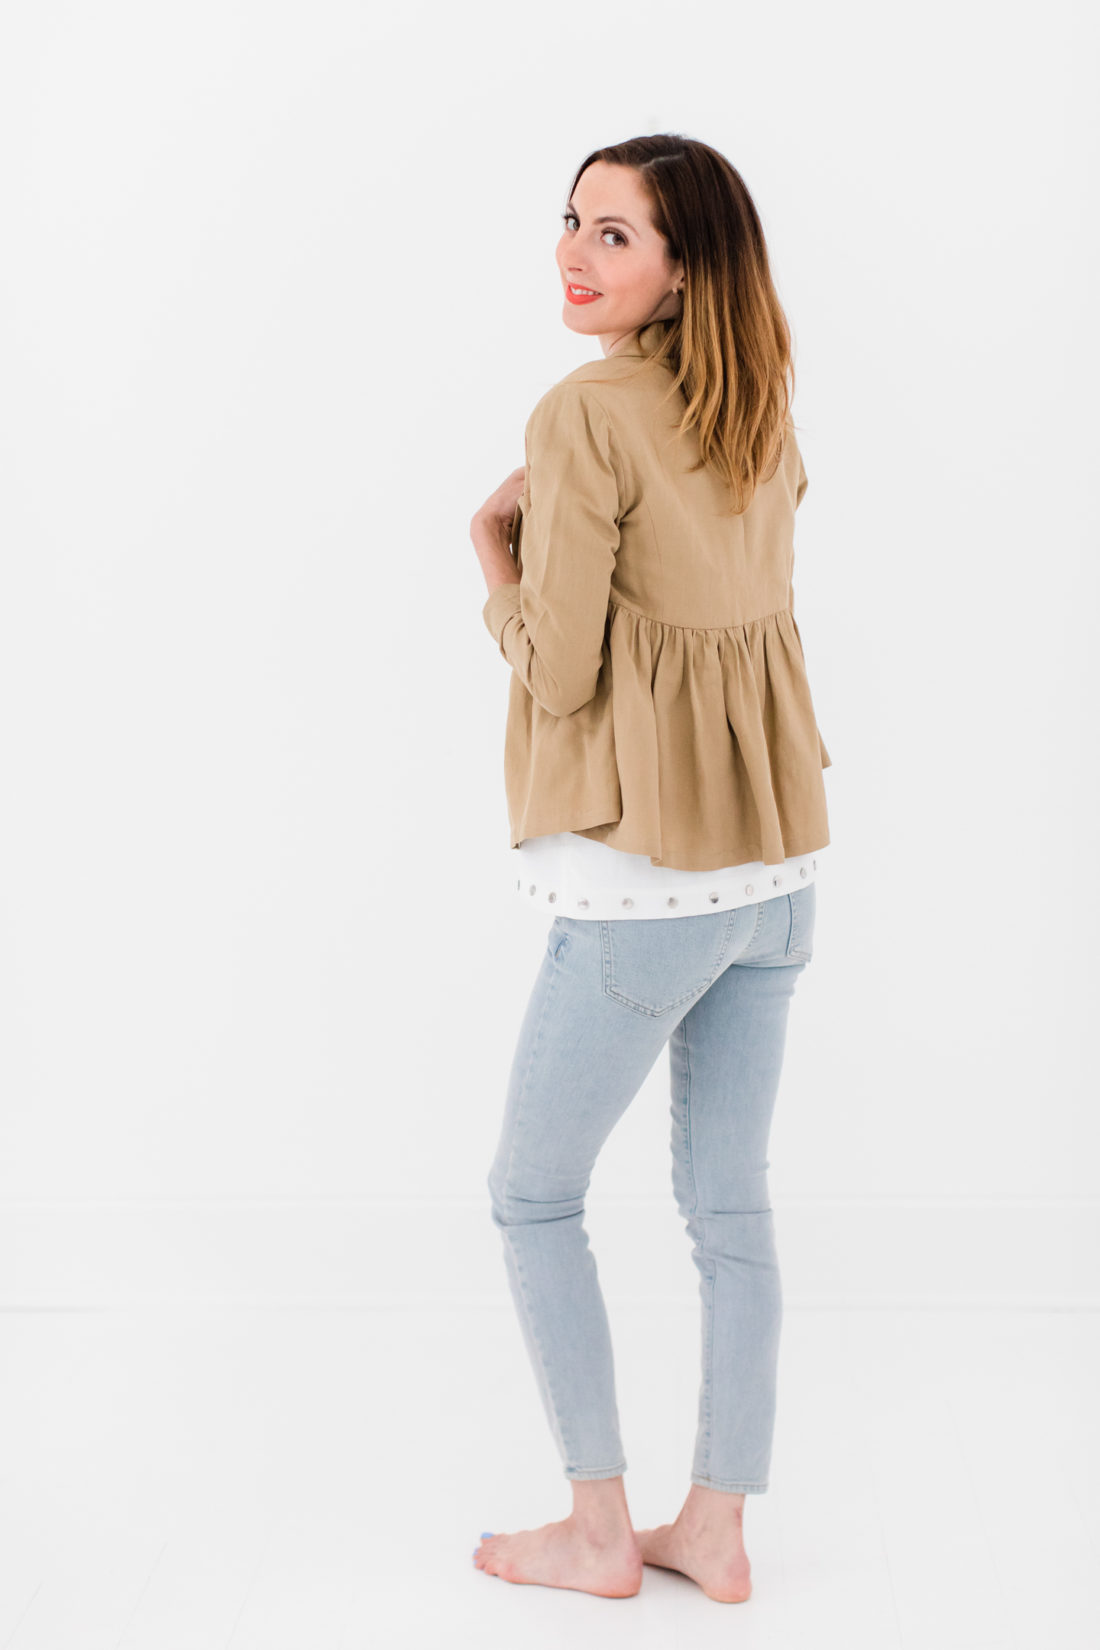 Eva Amurri Martino wears a white bow top, camel ruffle jacket, and jeans as part of a post about packing simply